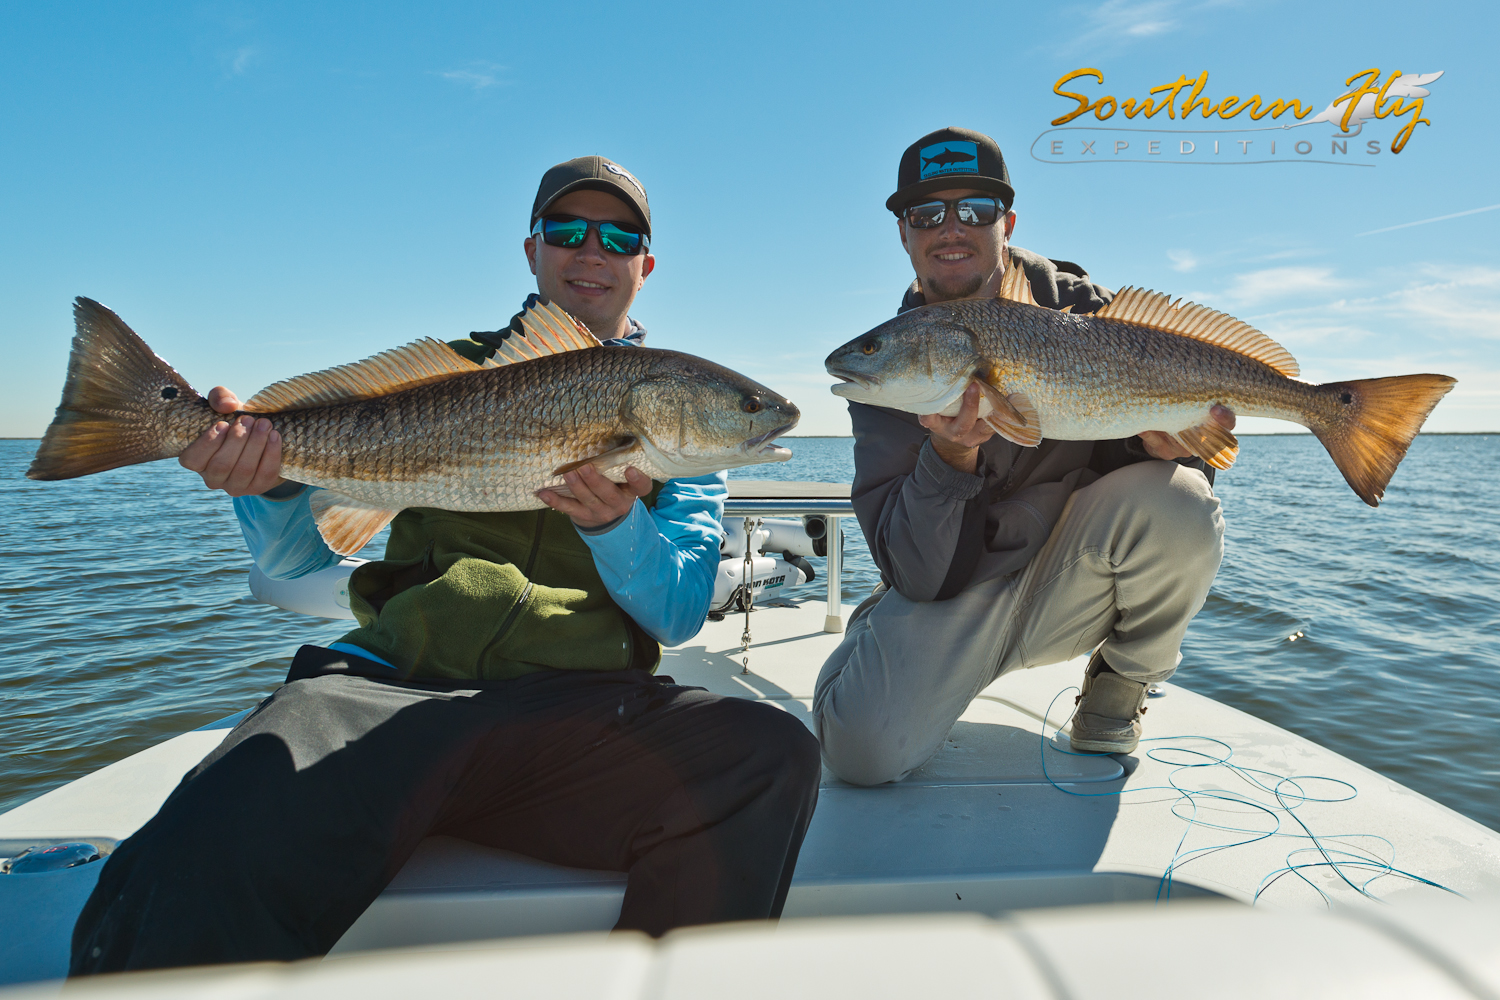 Fly Fishing for Redfish with Southern Fly Expeditions